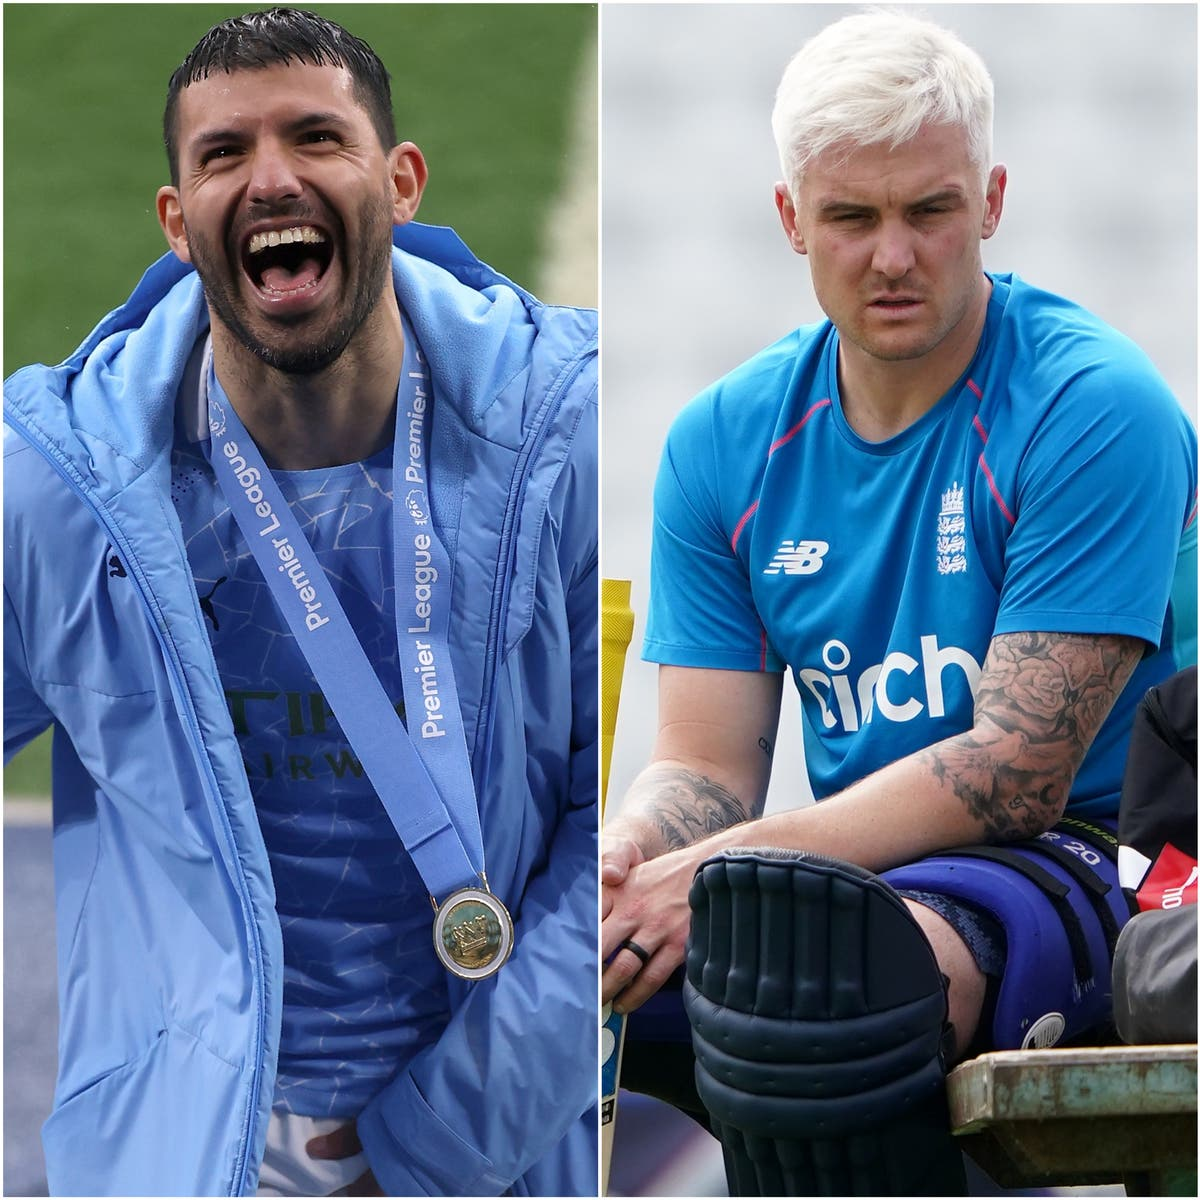 City's Aguero shirt tribute and blond cricketers – Wednesday's sporting social